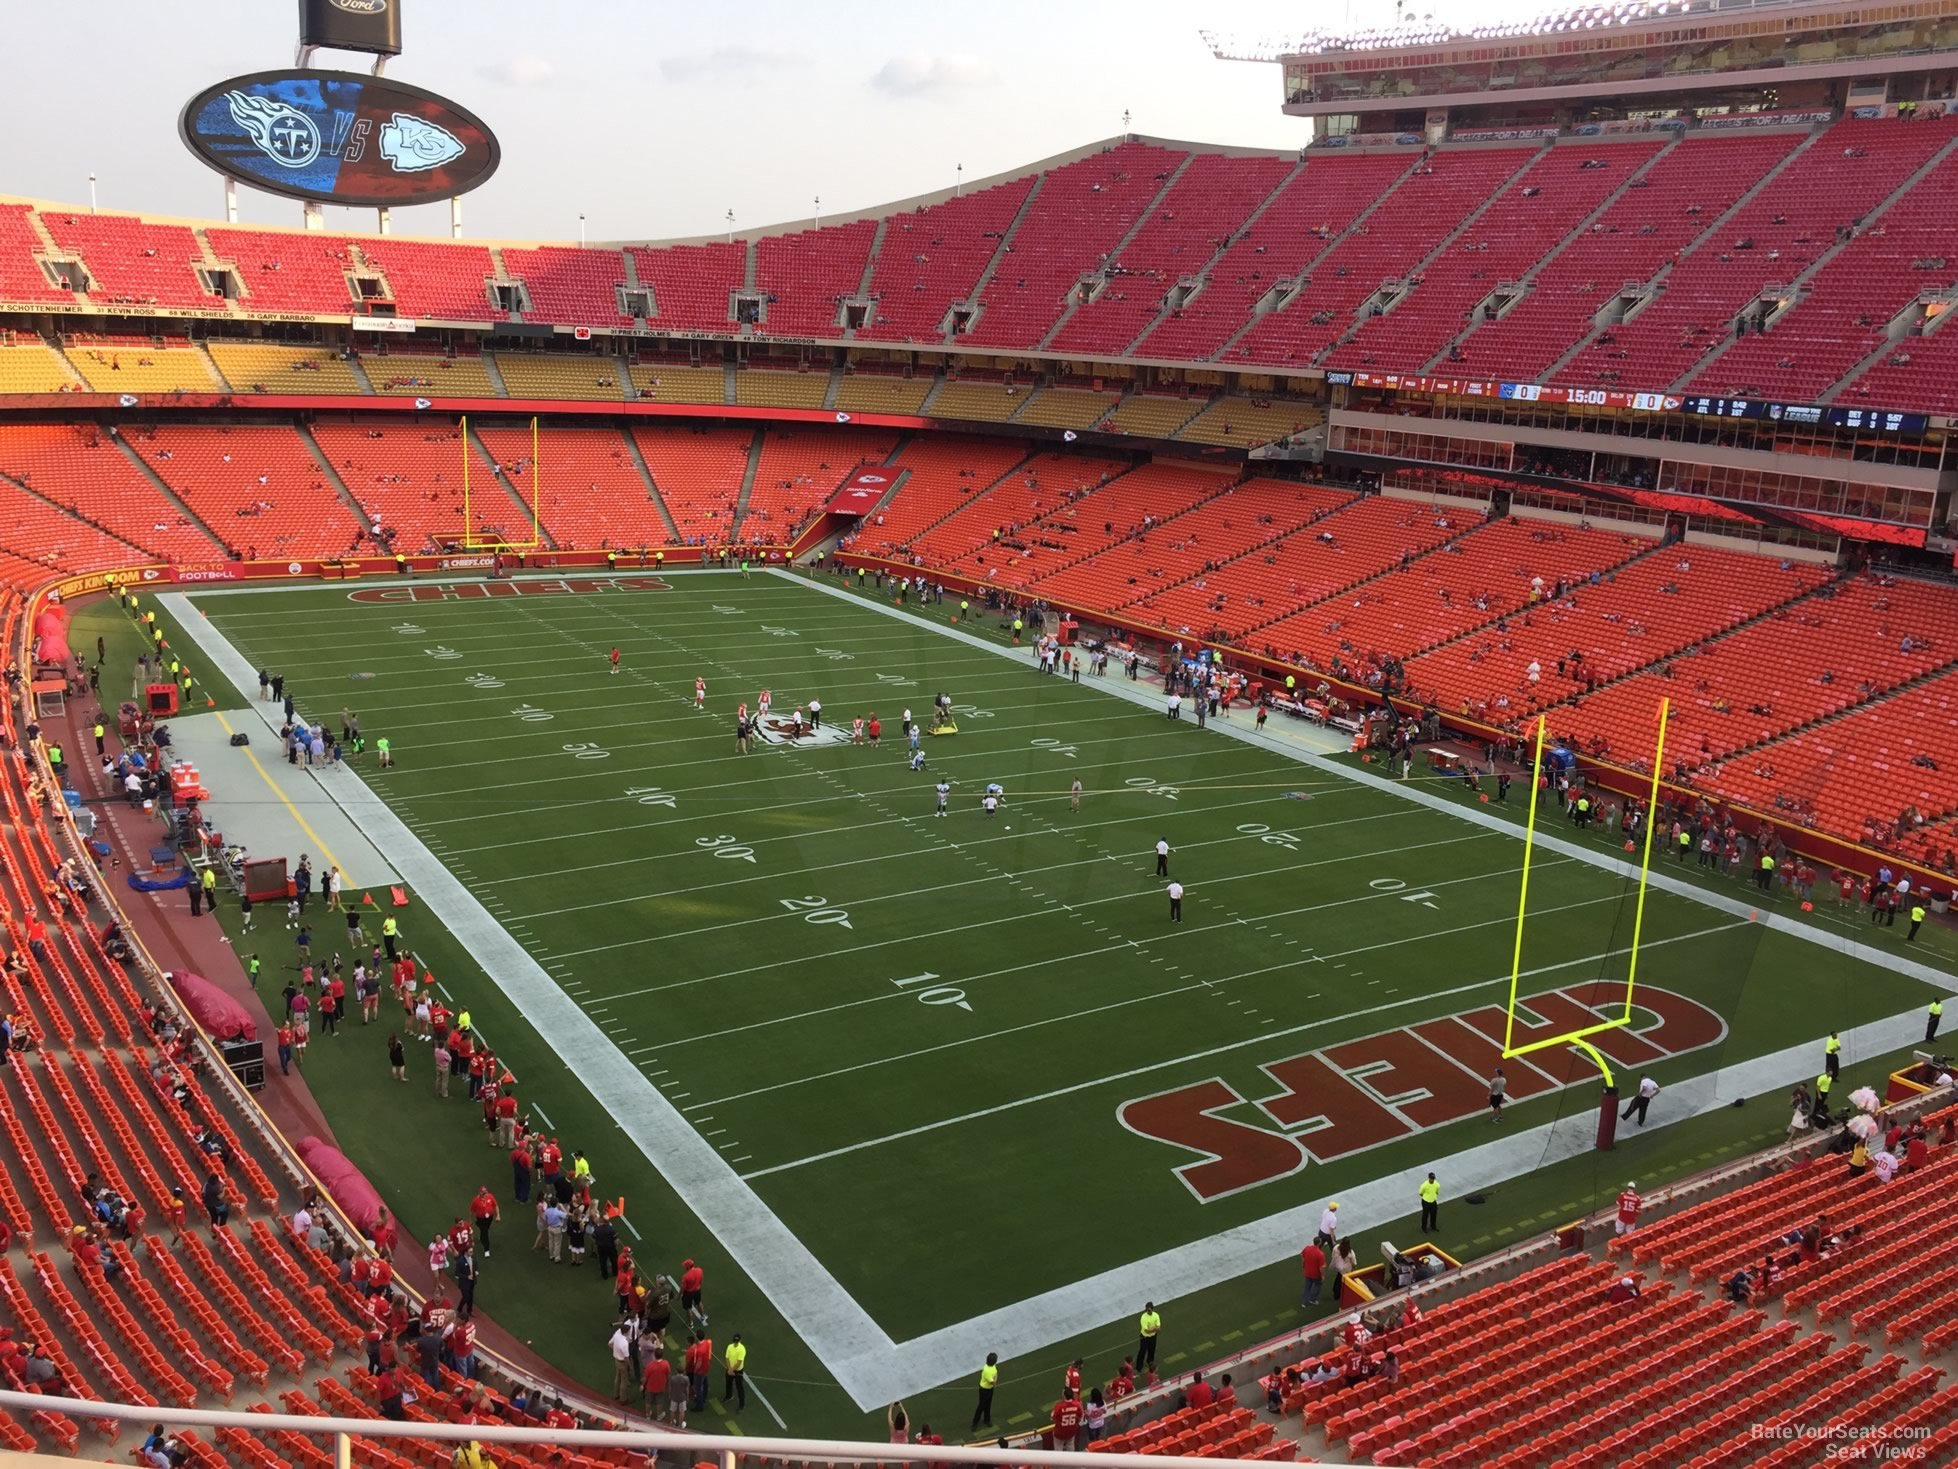 Seat View for Arrowhead Stadium Section 339, Row 7